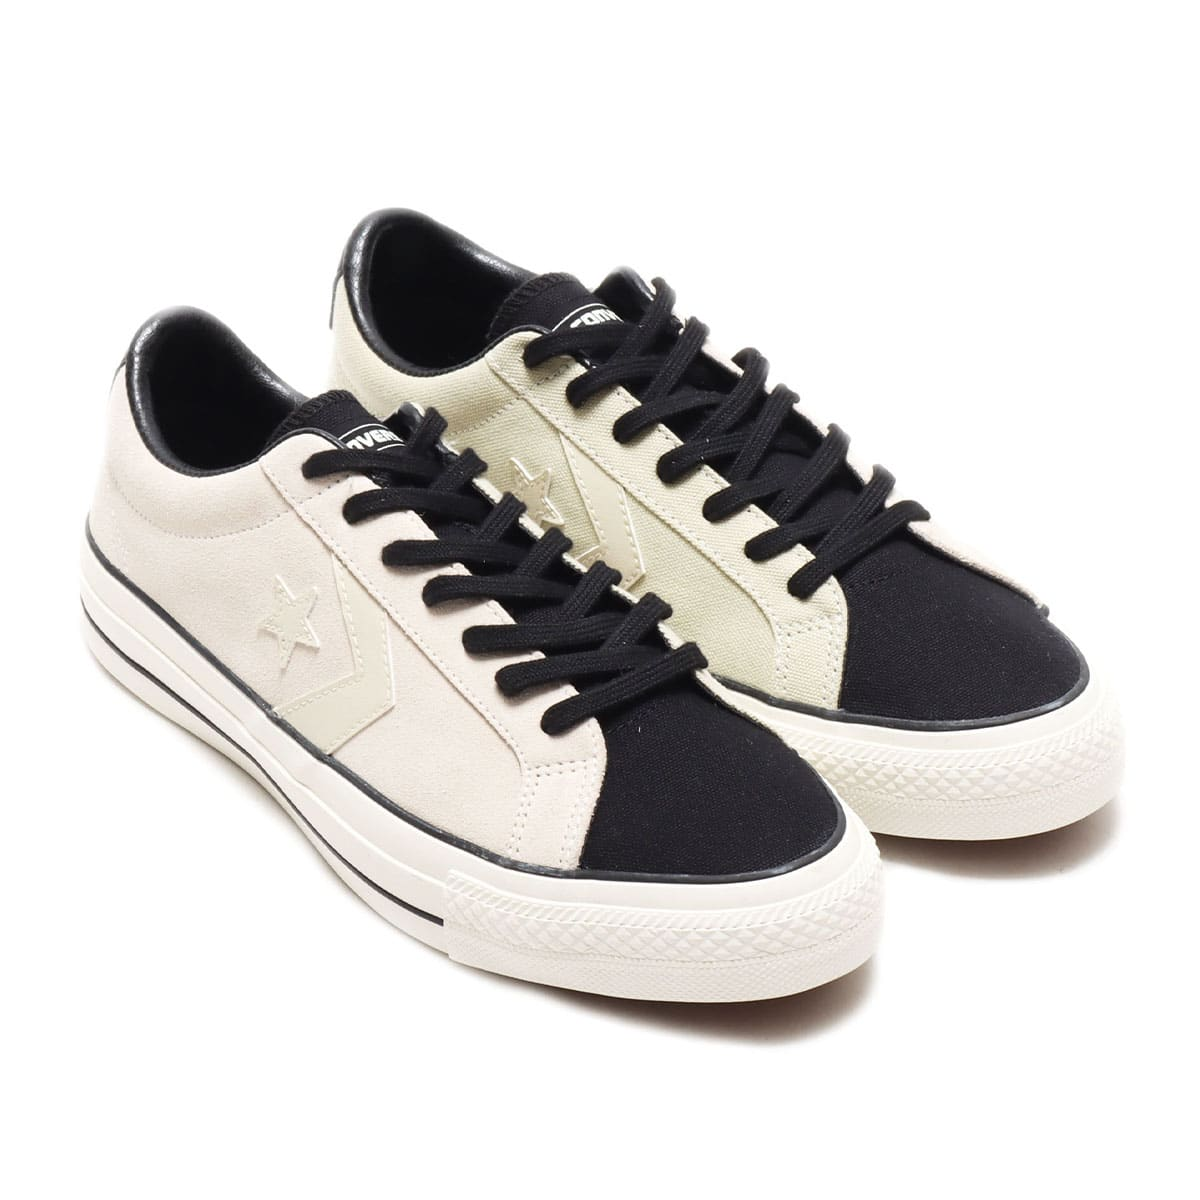 CONVERSE PRORIDE SK OX WHITE/BLACK 20FW-I_photo_large